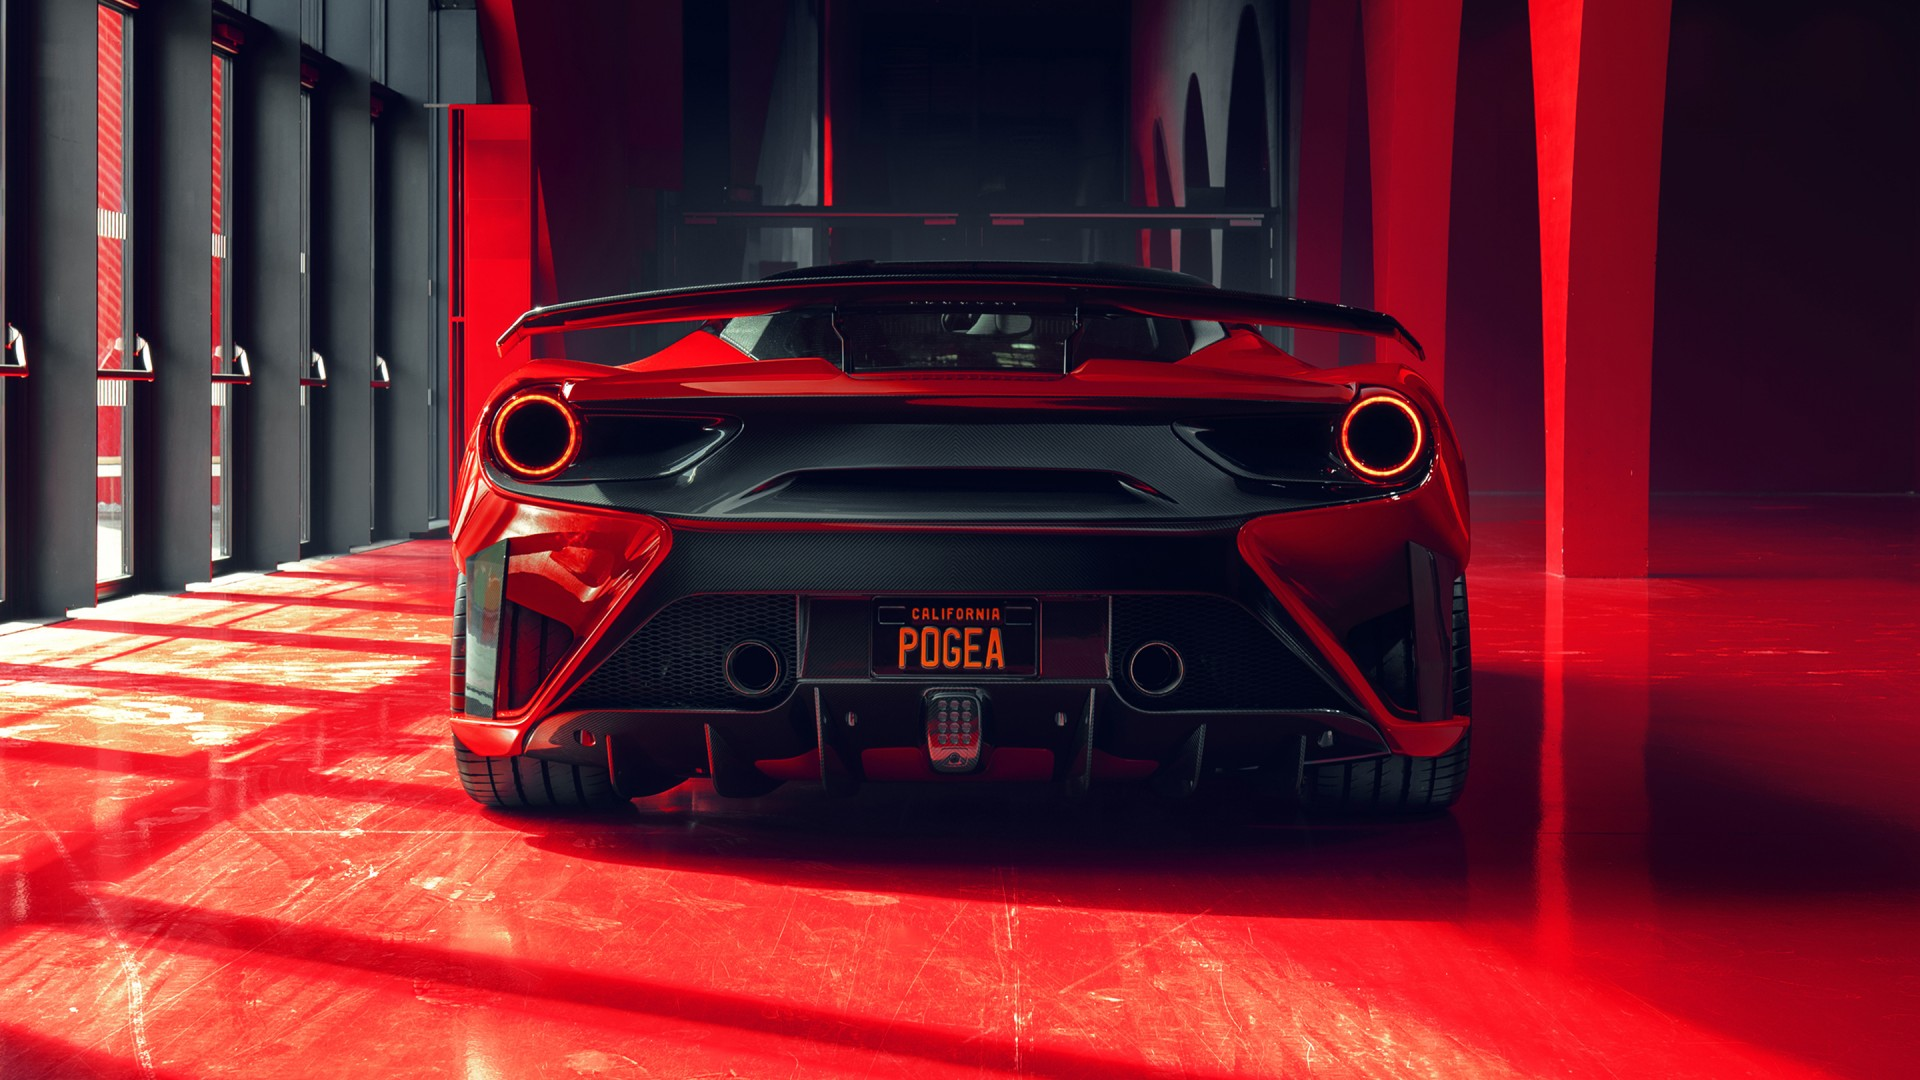 4k Car Wallpapers Hd 2018 Pogea Racing Fplus Corsa Ferrari 488 Gtb 2 Wallpaper